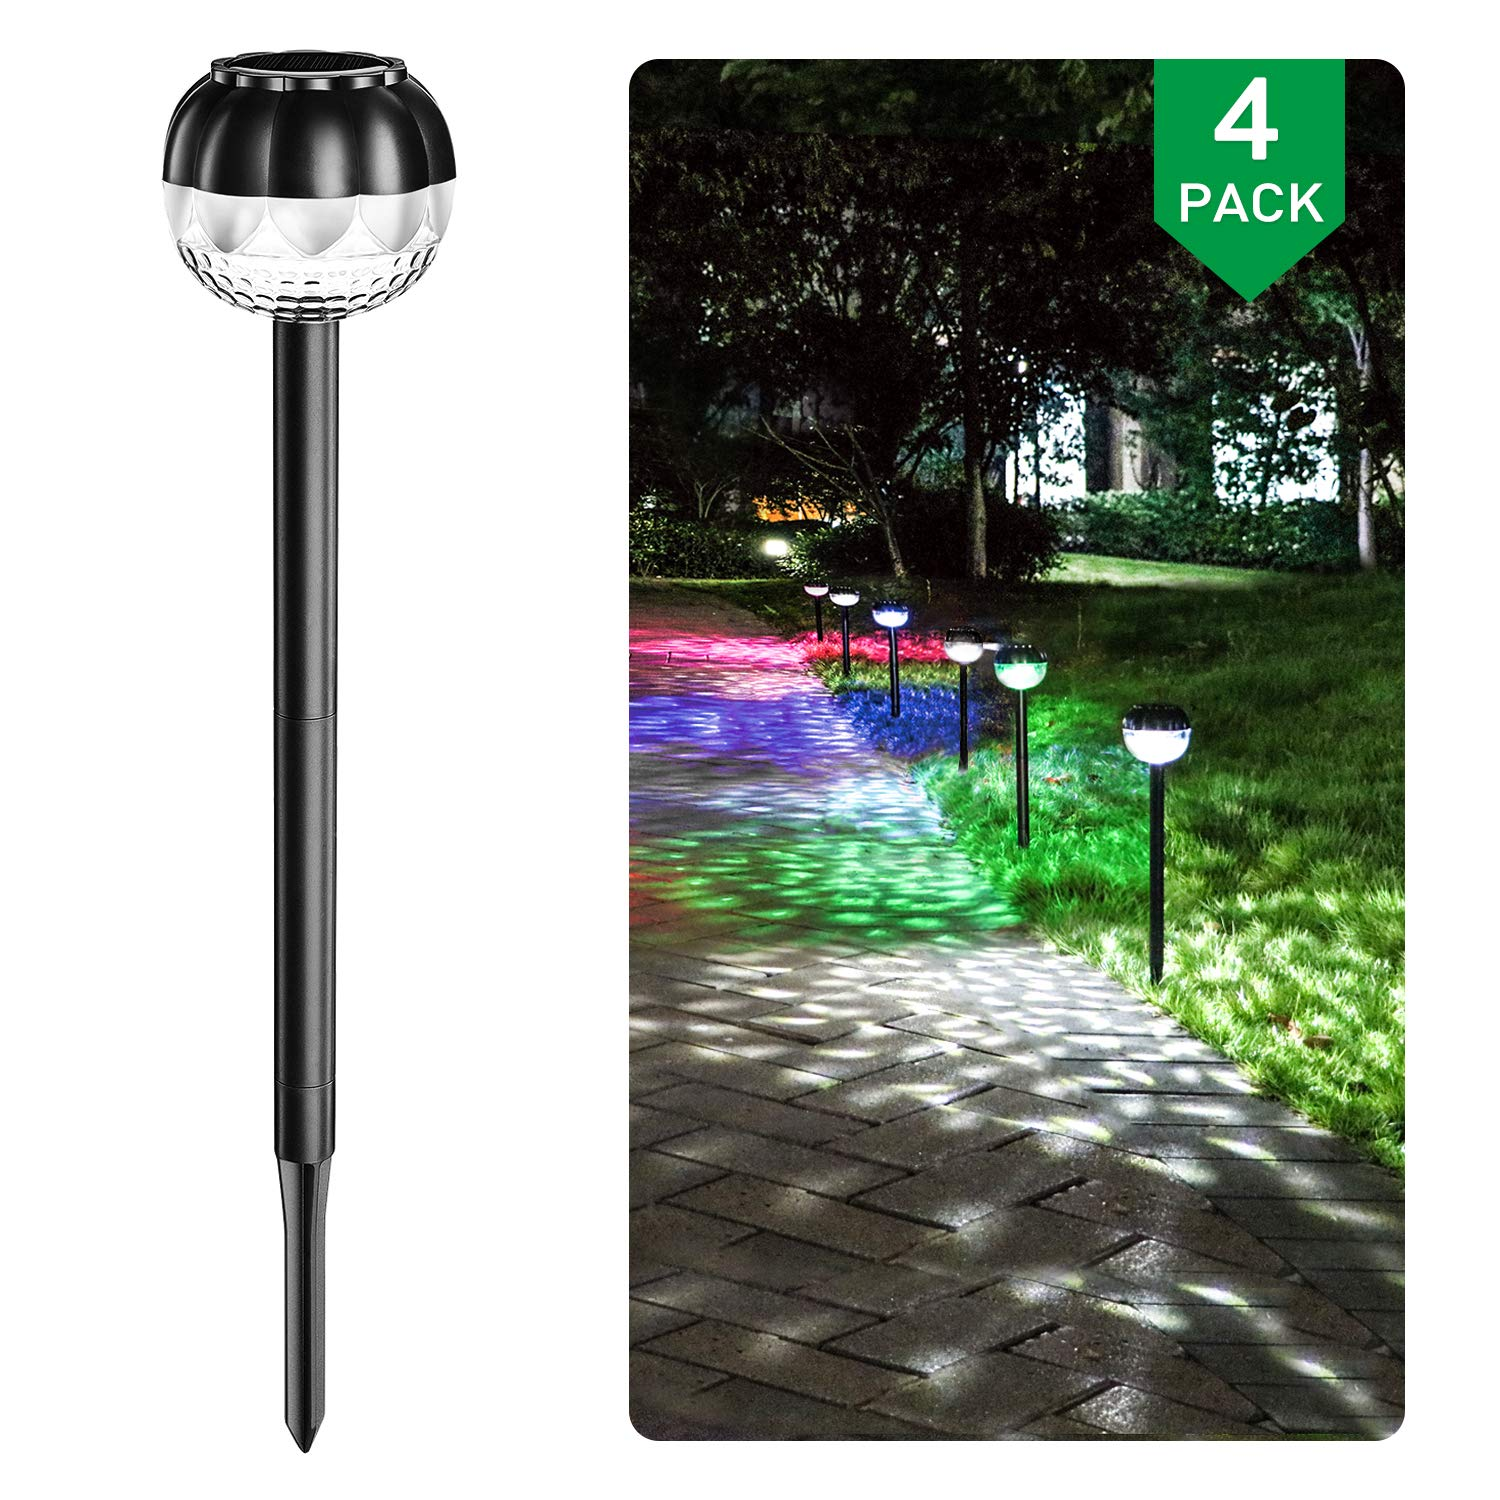 GOSHELL Solar Landscape Lights Outdoor Solar Pathway lights, Super Bright, High Lumen, IP65 Waterproof, 7- Color changing, LED Solar Garden Lights Decorative for Yard Pathway Walkway Lawn Patio by GOSHELL